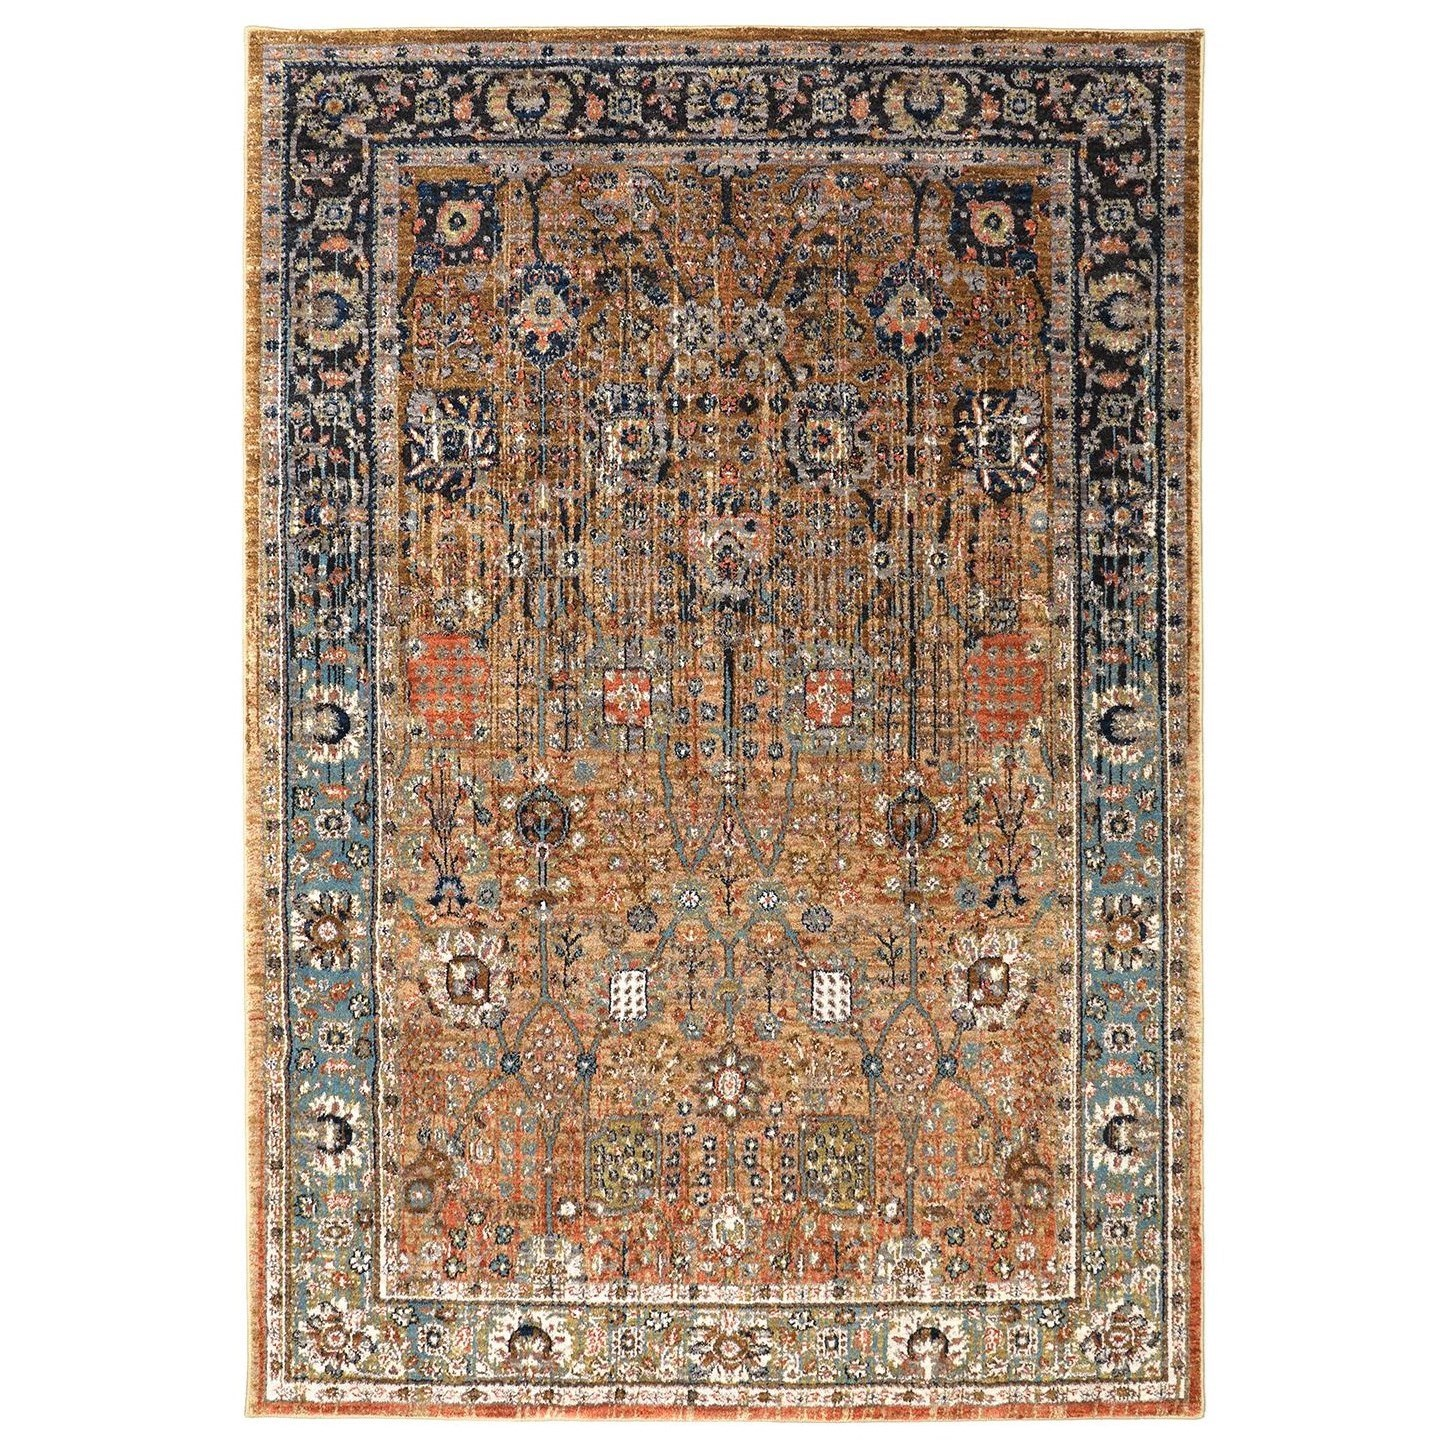 Spice Market 5'3x7'10 Myanmar Tobacco Rug by Karastan Rugs at Darvin Furniture